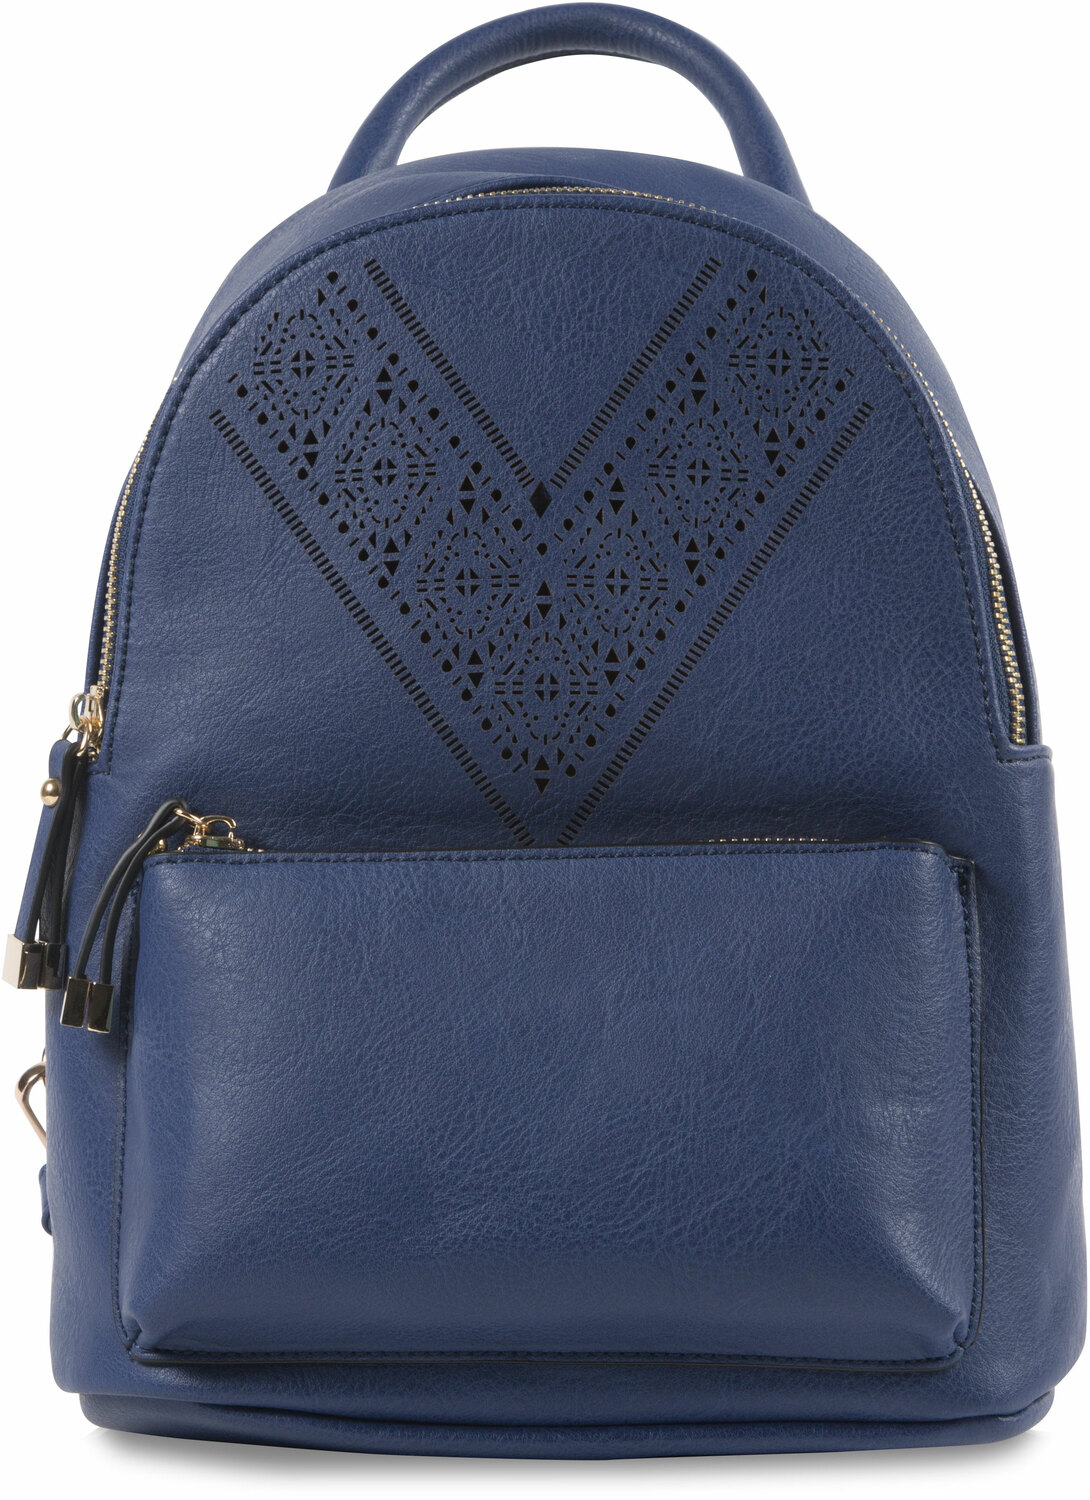 "Navy Ali by H2Z Laser Cut Handbags - Navy Ali - 9"" x 11.5"" Backpack Handbag"